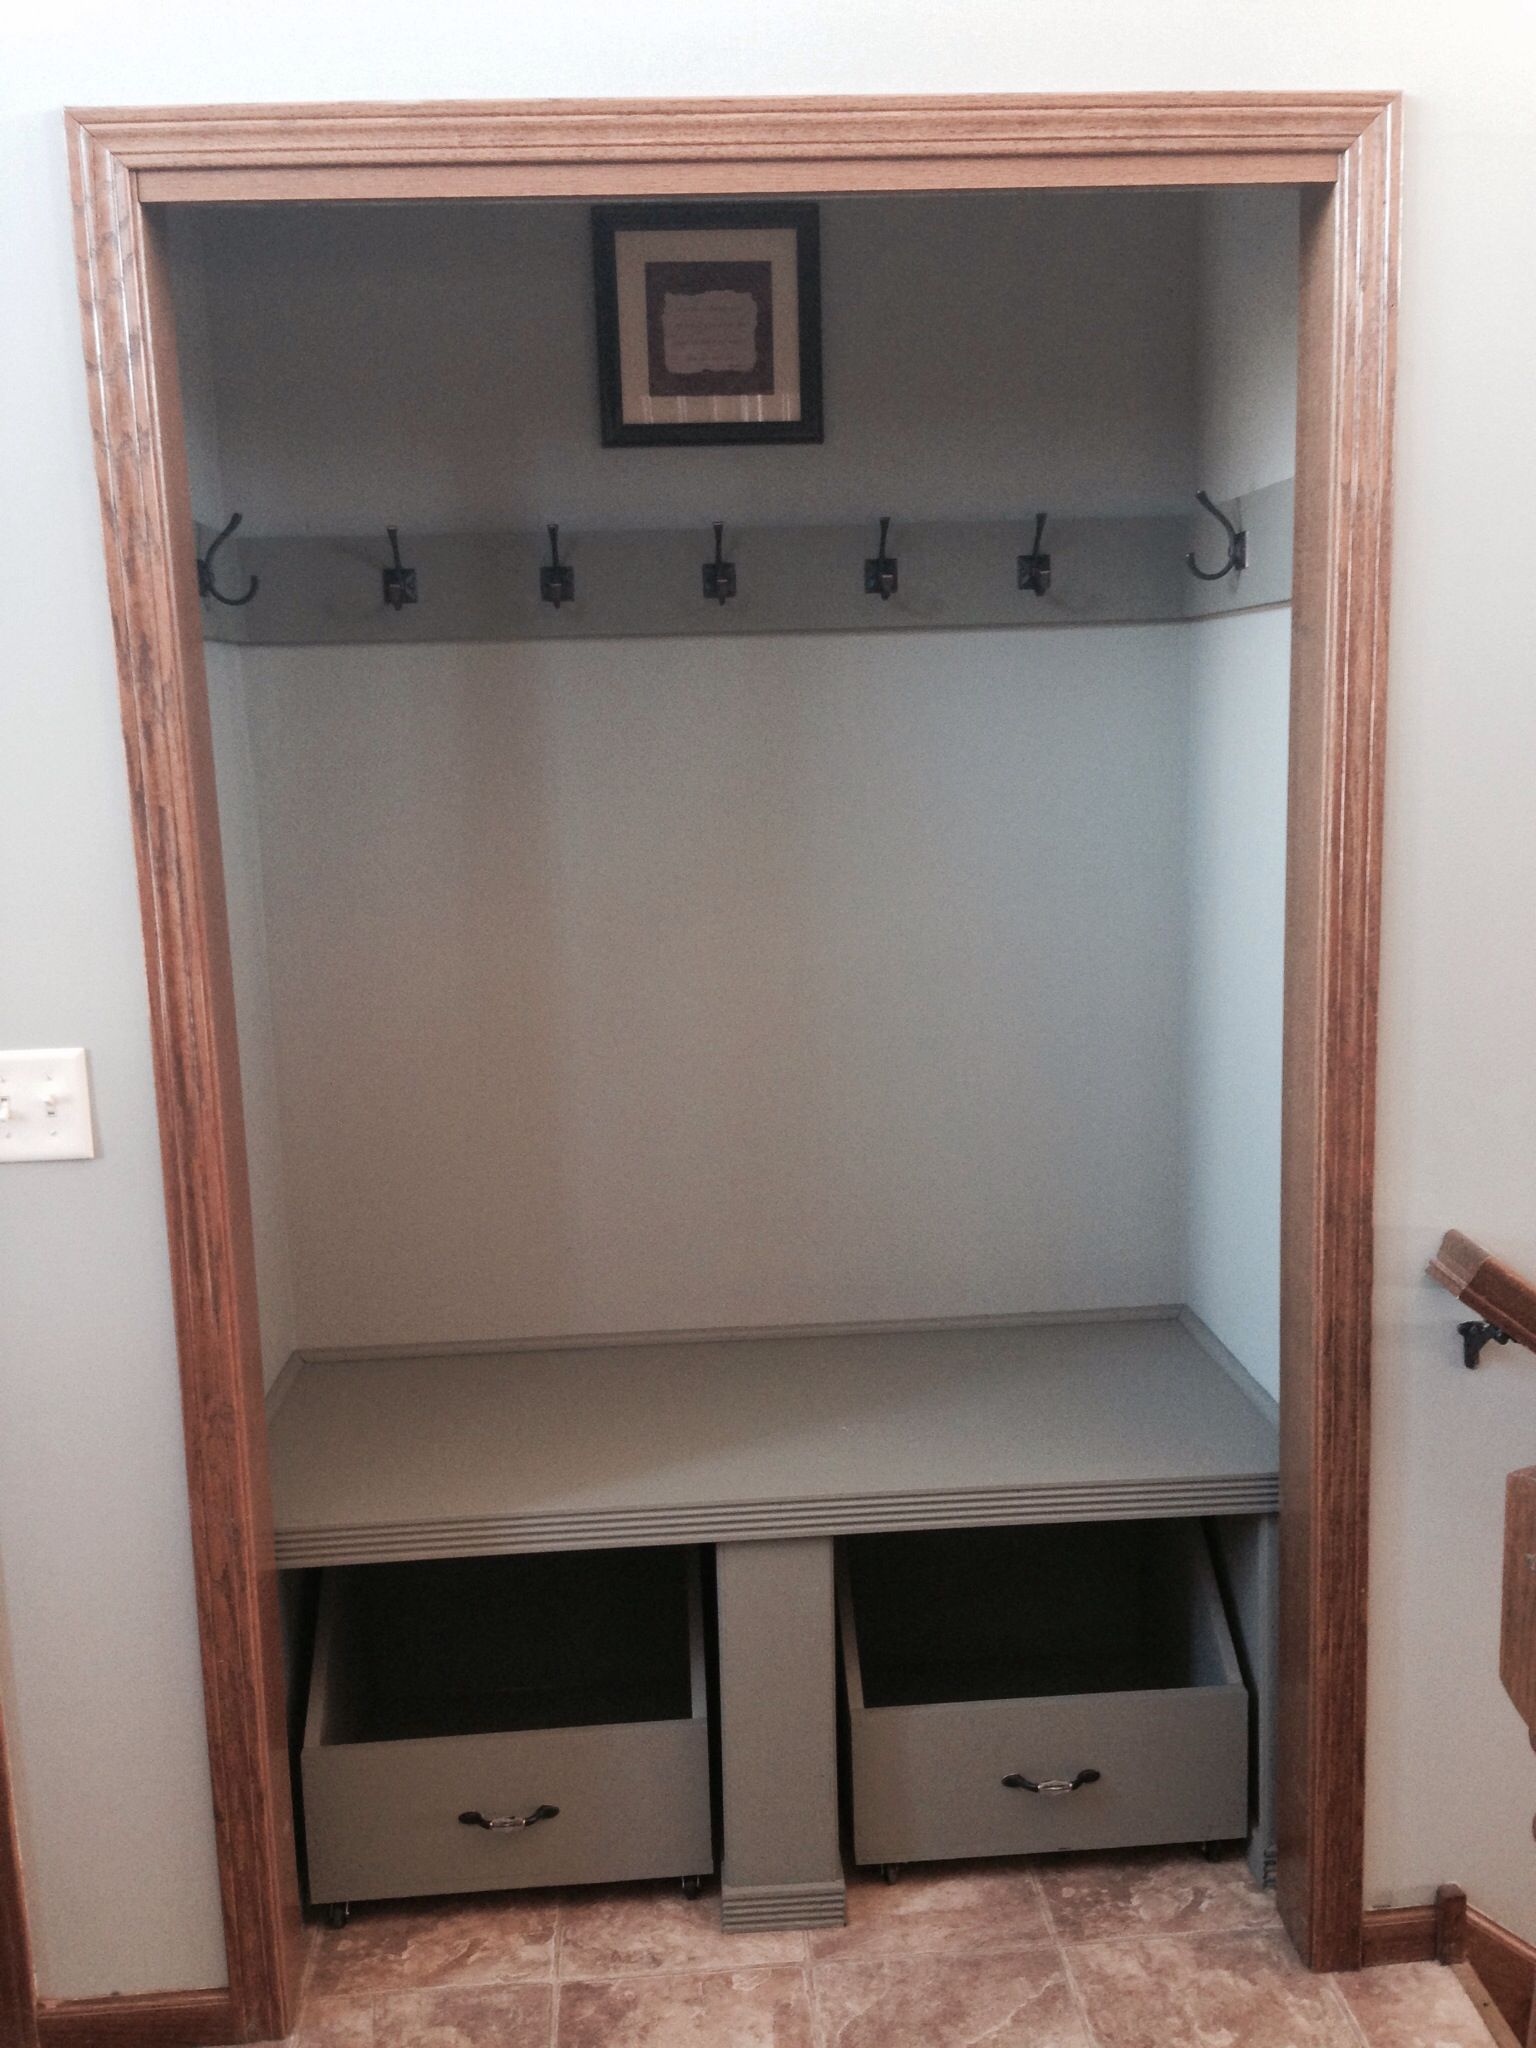 Front Door Closet With Doors Removed And Shelf Hooks And